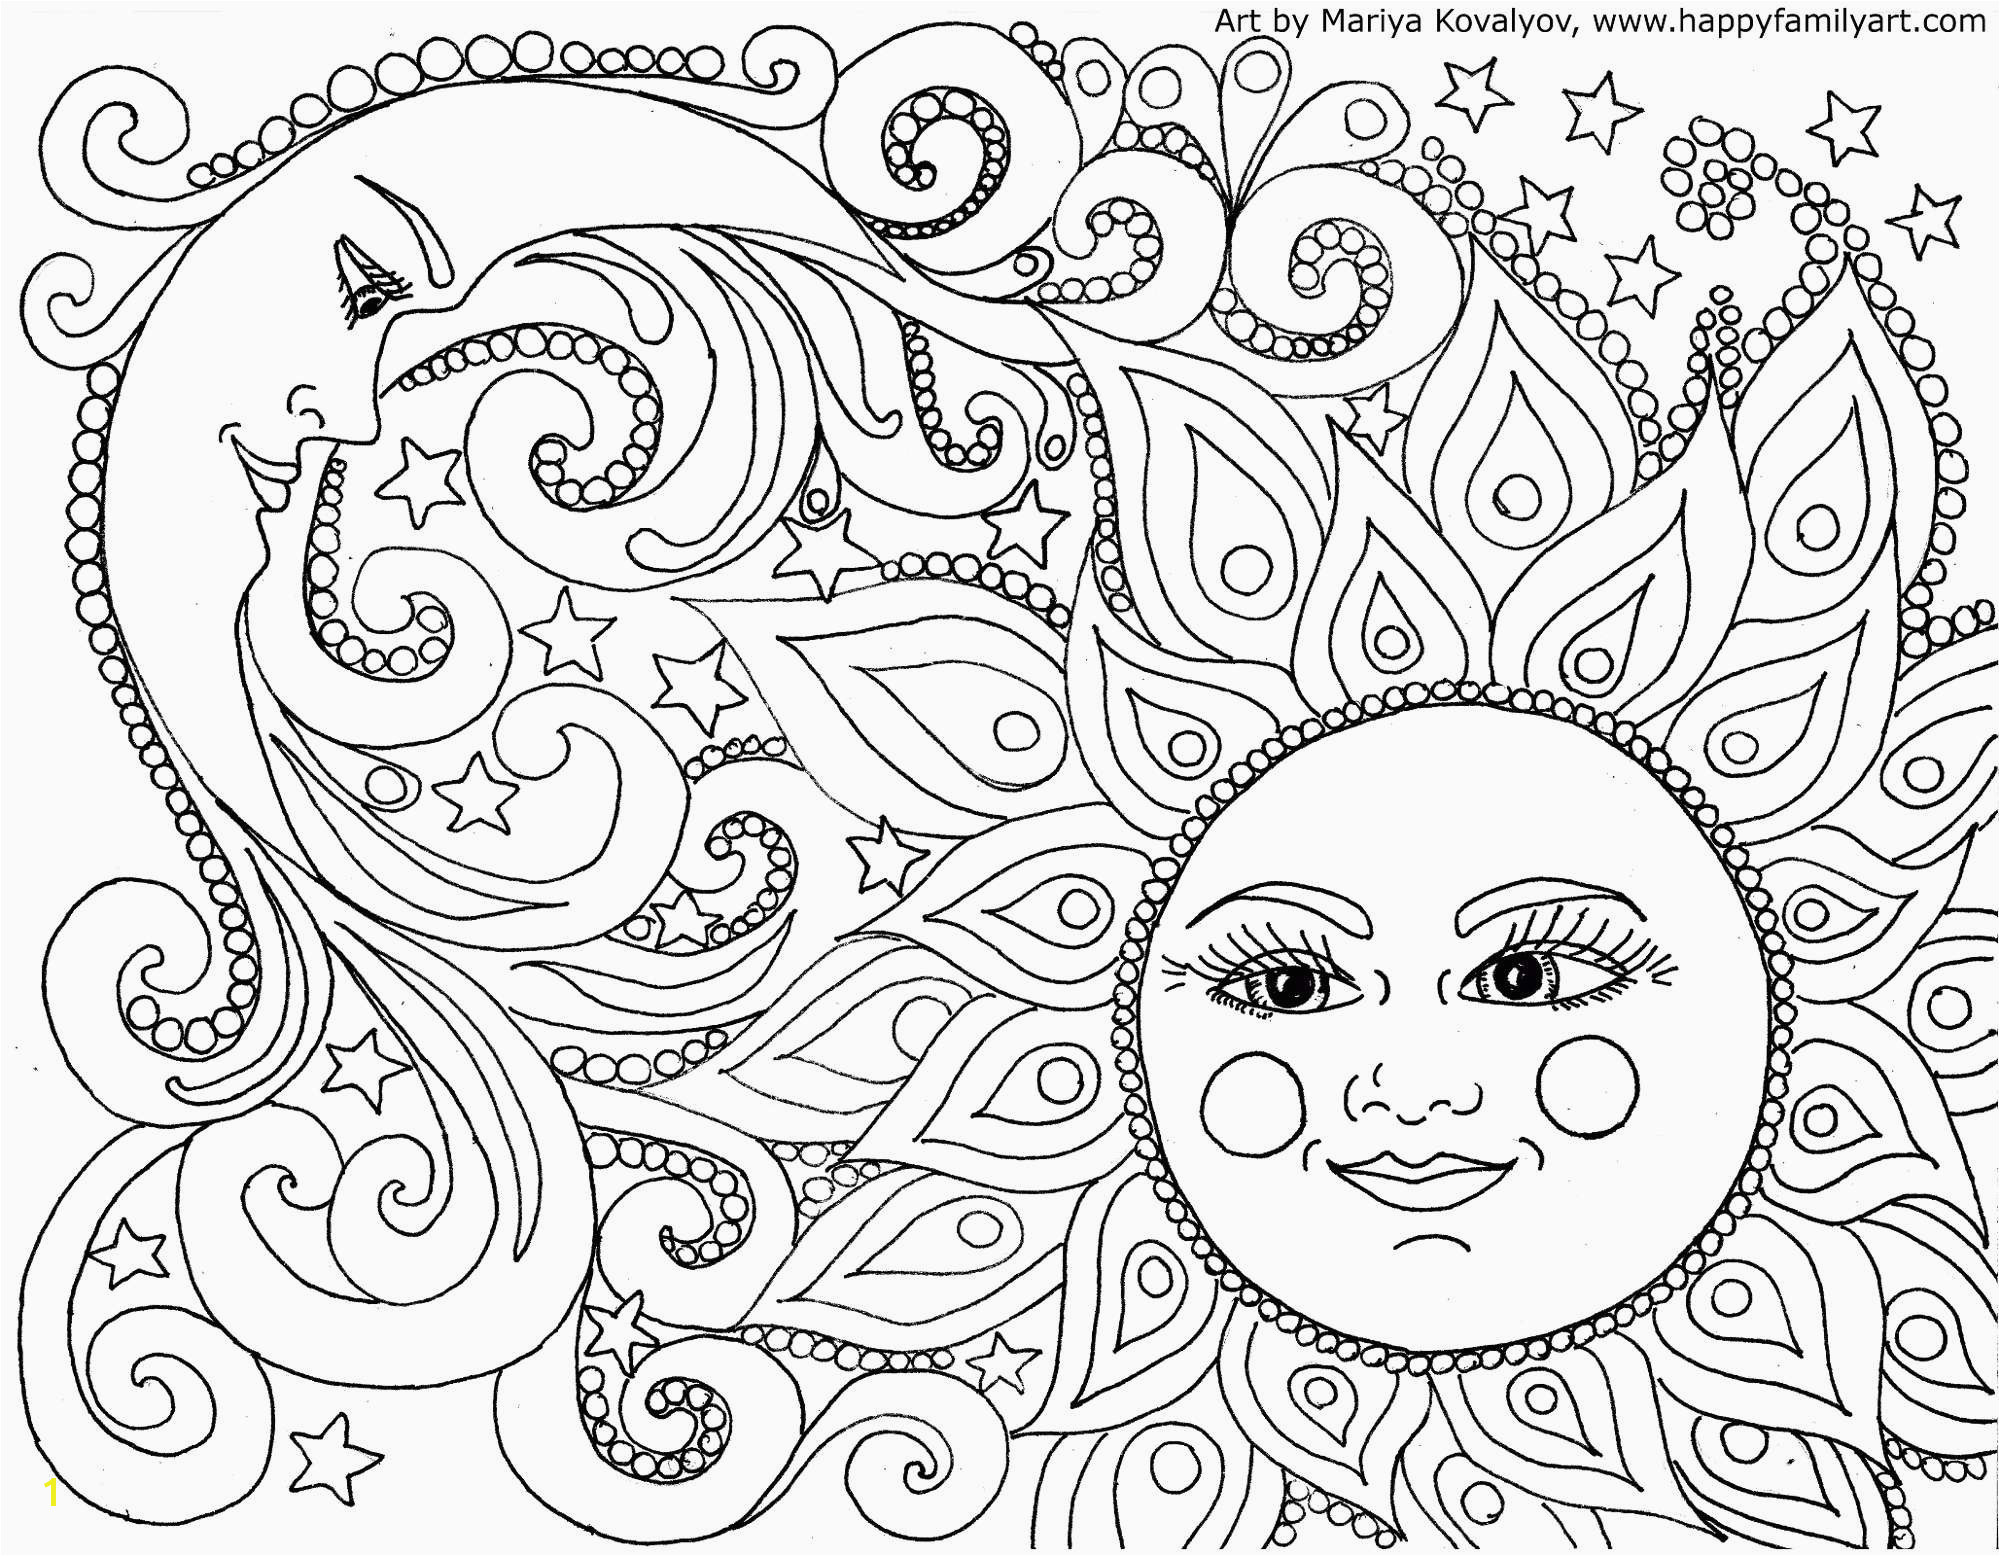 Colering Seiten Herrliche Christmas Coloring In Pages Free Cool Coloring Printables 0d Fun